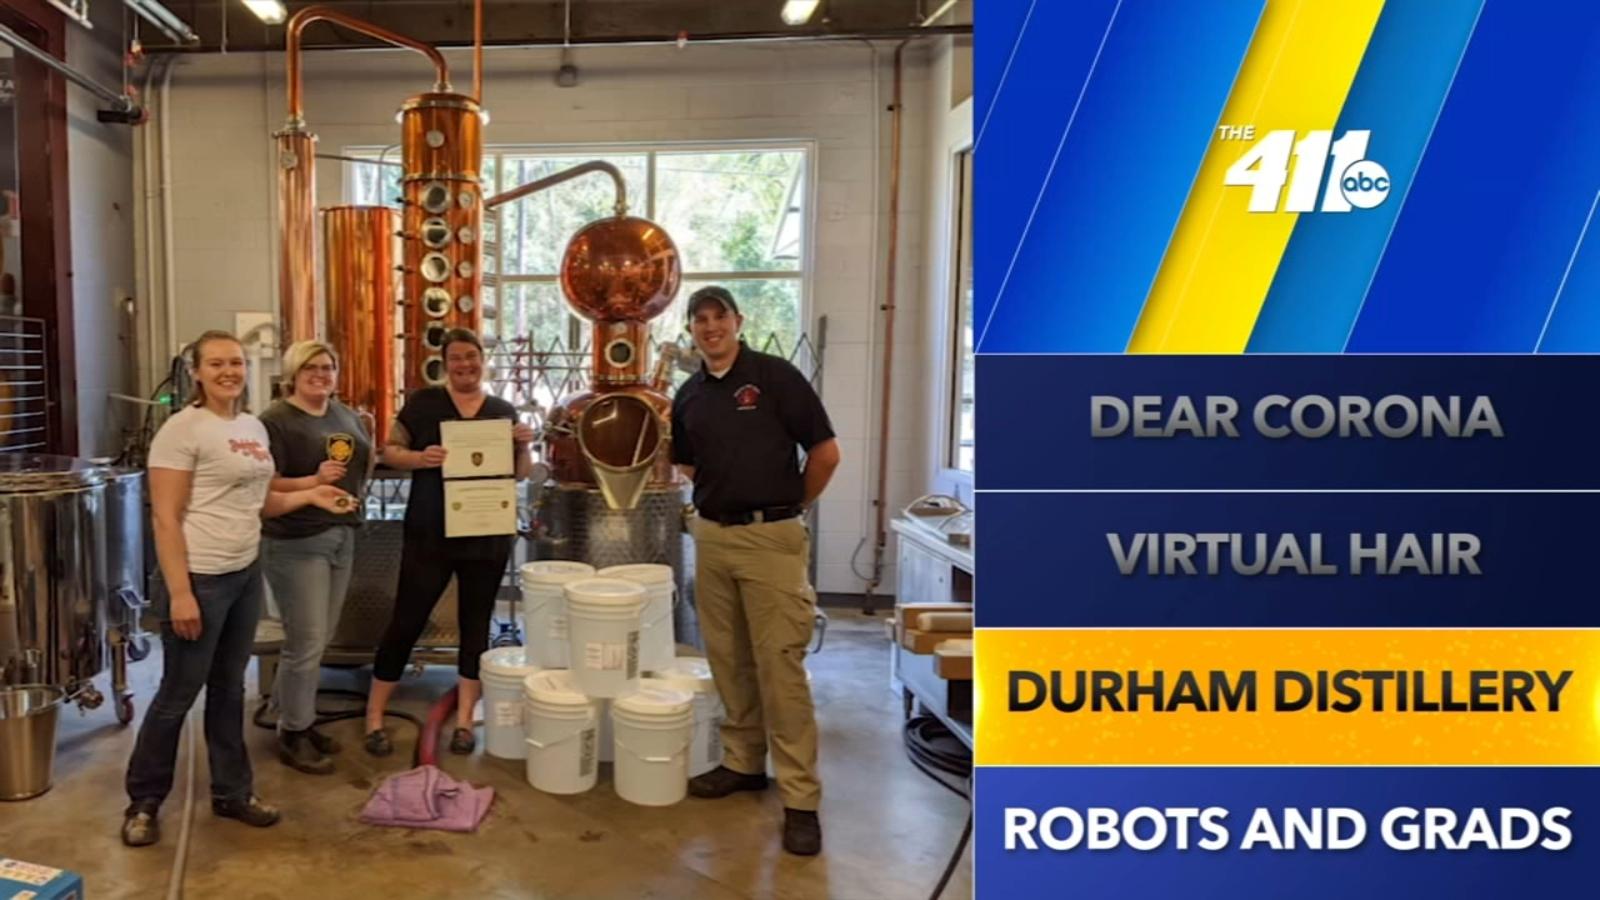 The 411: Durham Distillery Donating Hand Sanitizer To Raleigh Fire Department photo